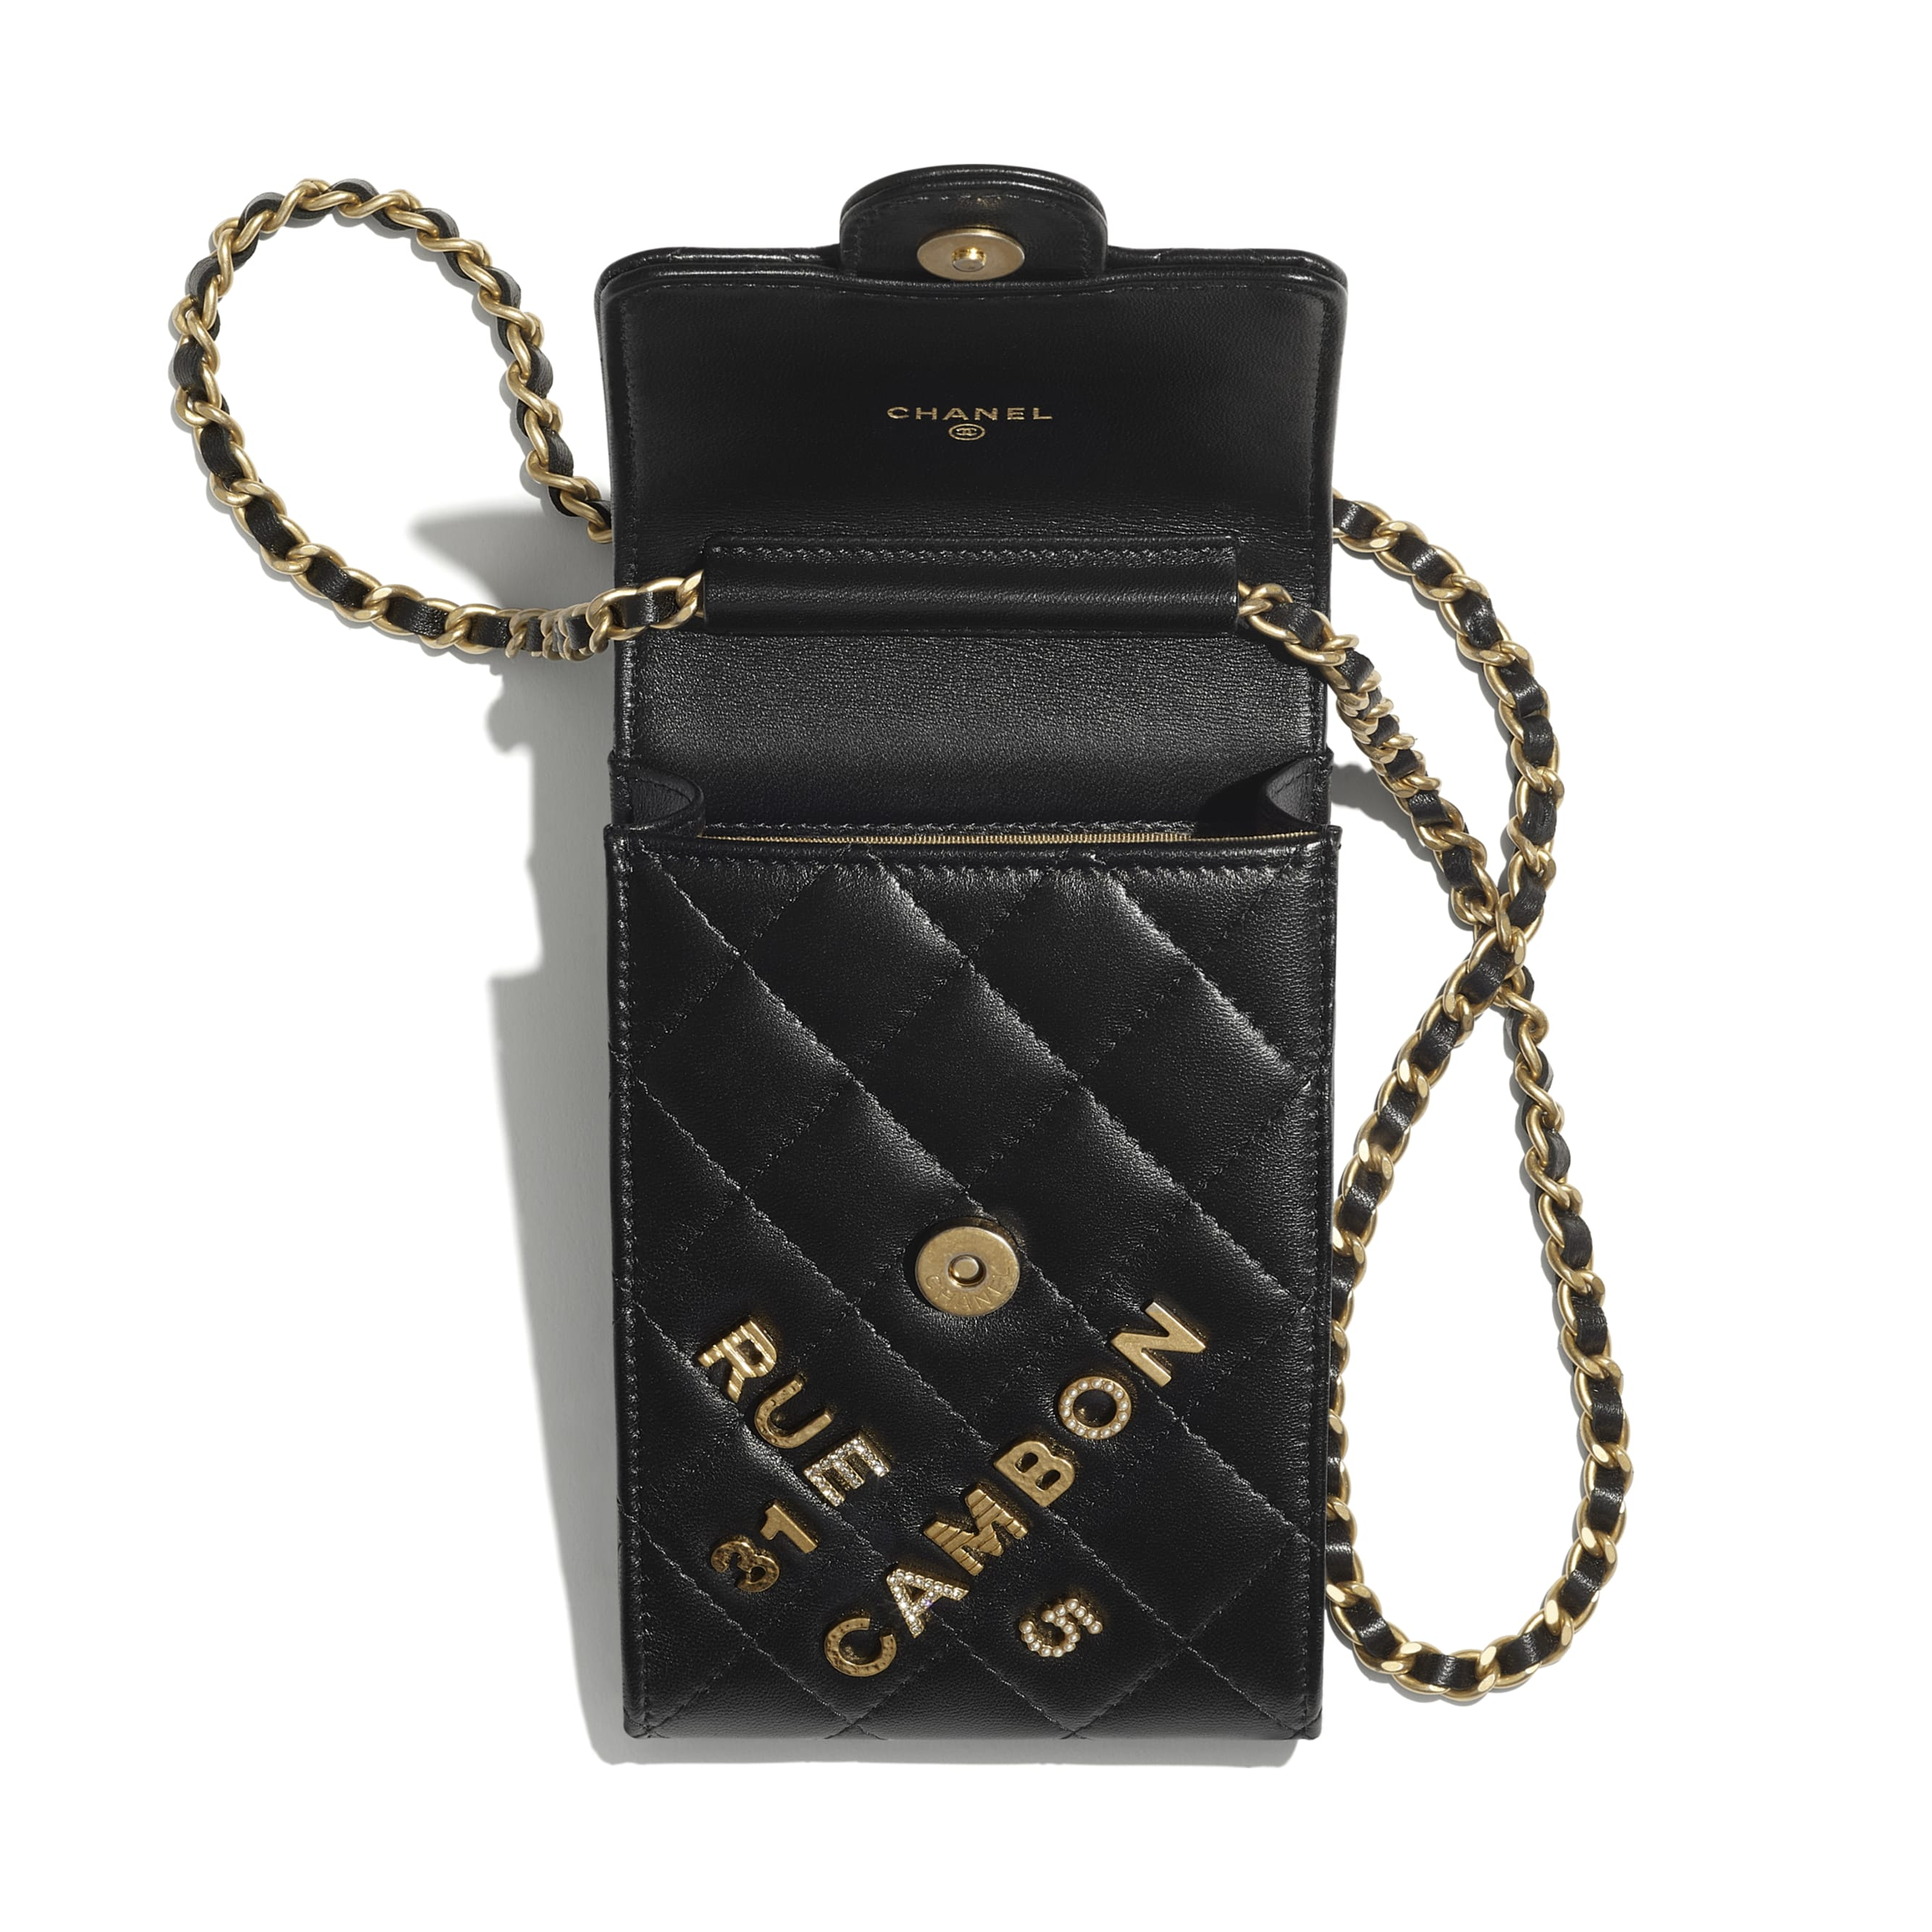 Phone Holder With Chain - Black - Lambskin - CHANEL - Alternative view - see standard sized version